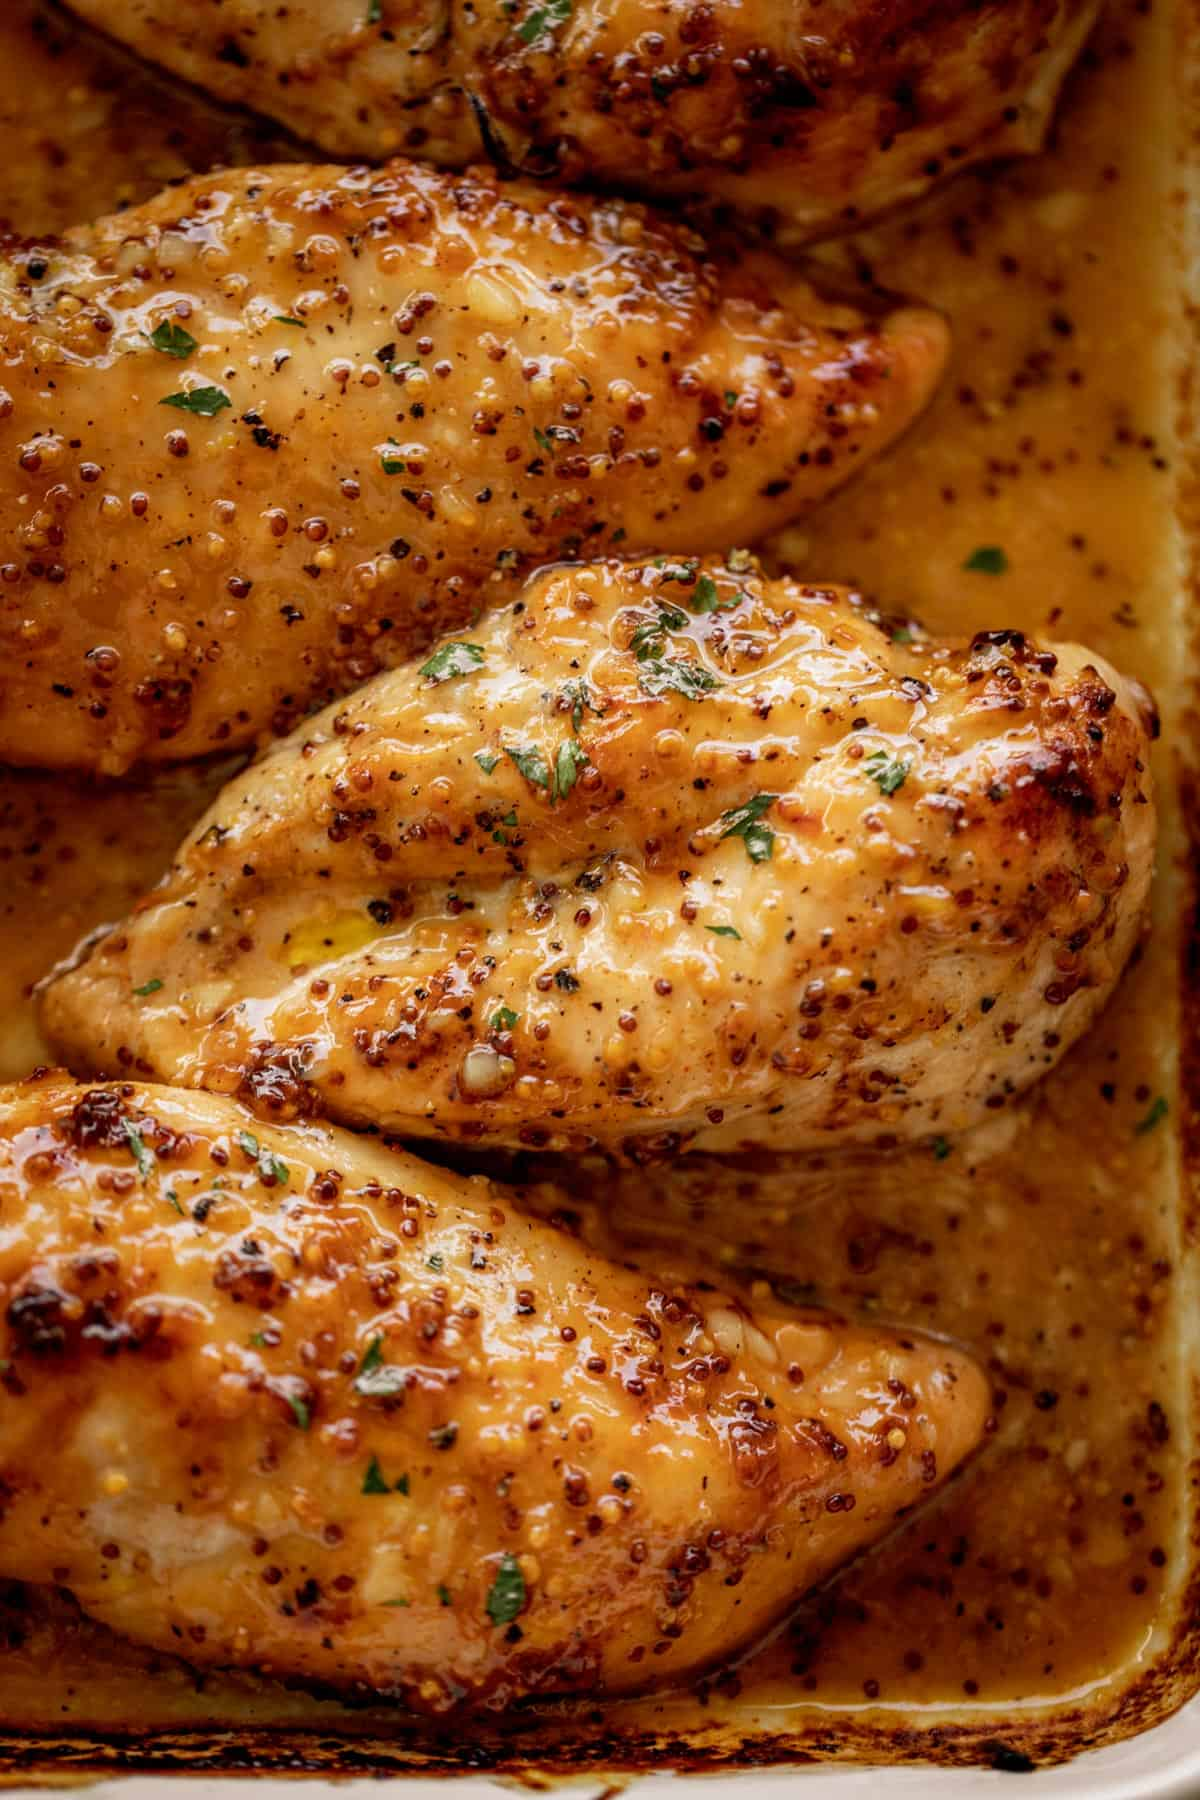 Tender and juicy Baked Chicken Breasts with a delicious honey mustard sauce with a kick of garlic and lemon juice takes only minutes to make! Baked Chicken couldn't be any easier to prepare for a quick and easy dinner idea! This will become your new favourite chicken breast recipe. | cafedelites.com